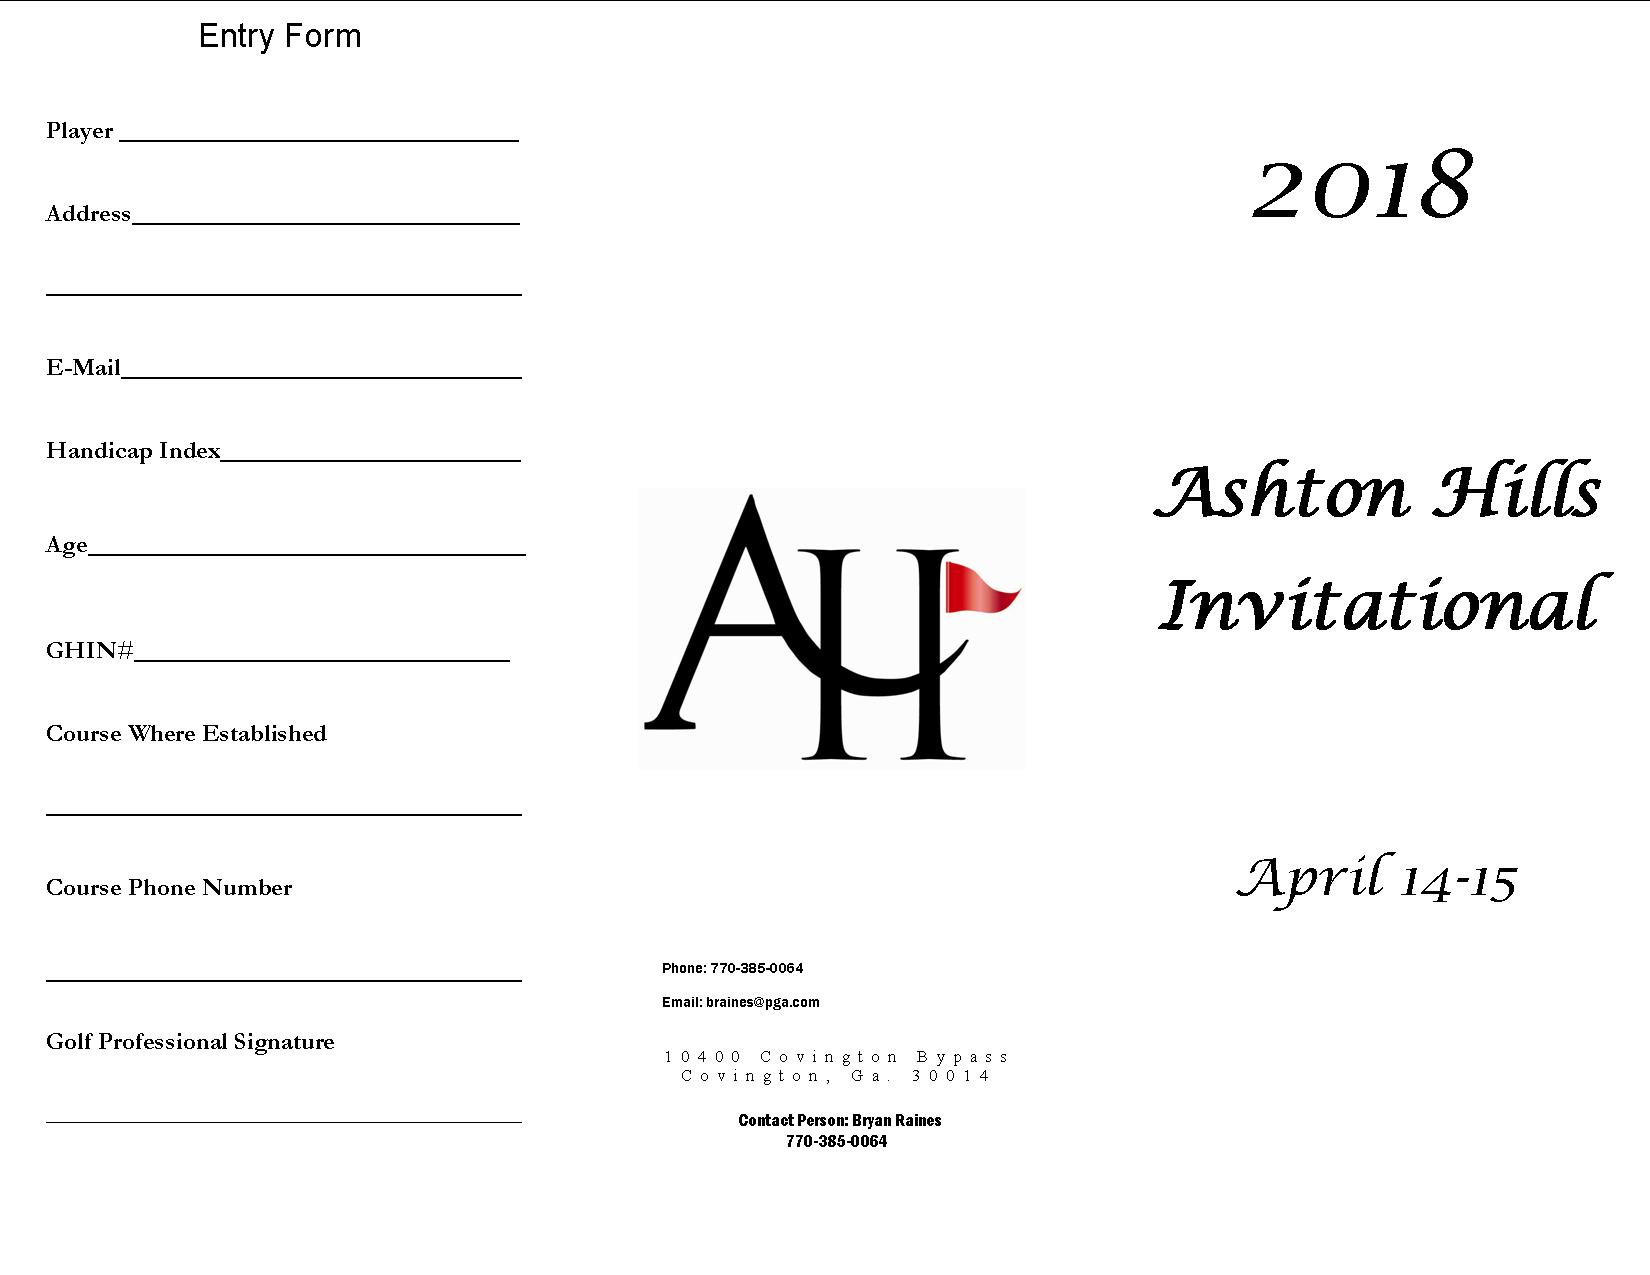 2018 AH Invitational 2 1